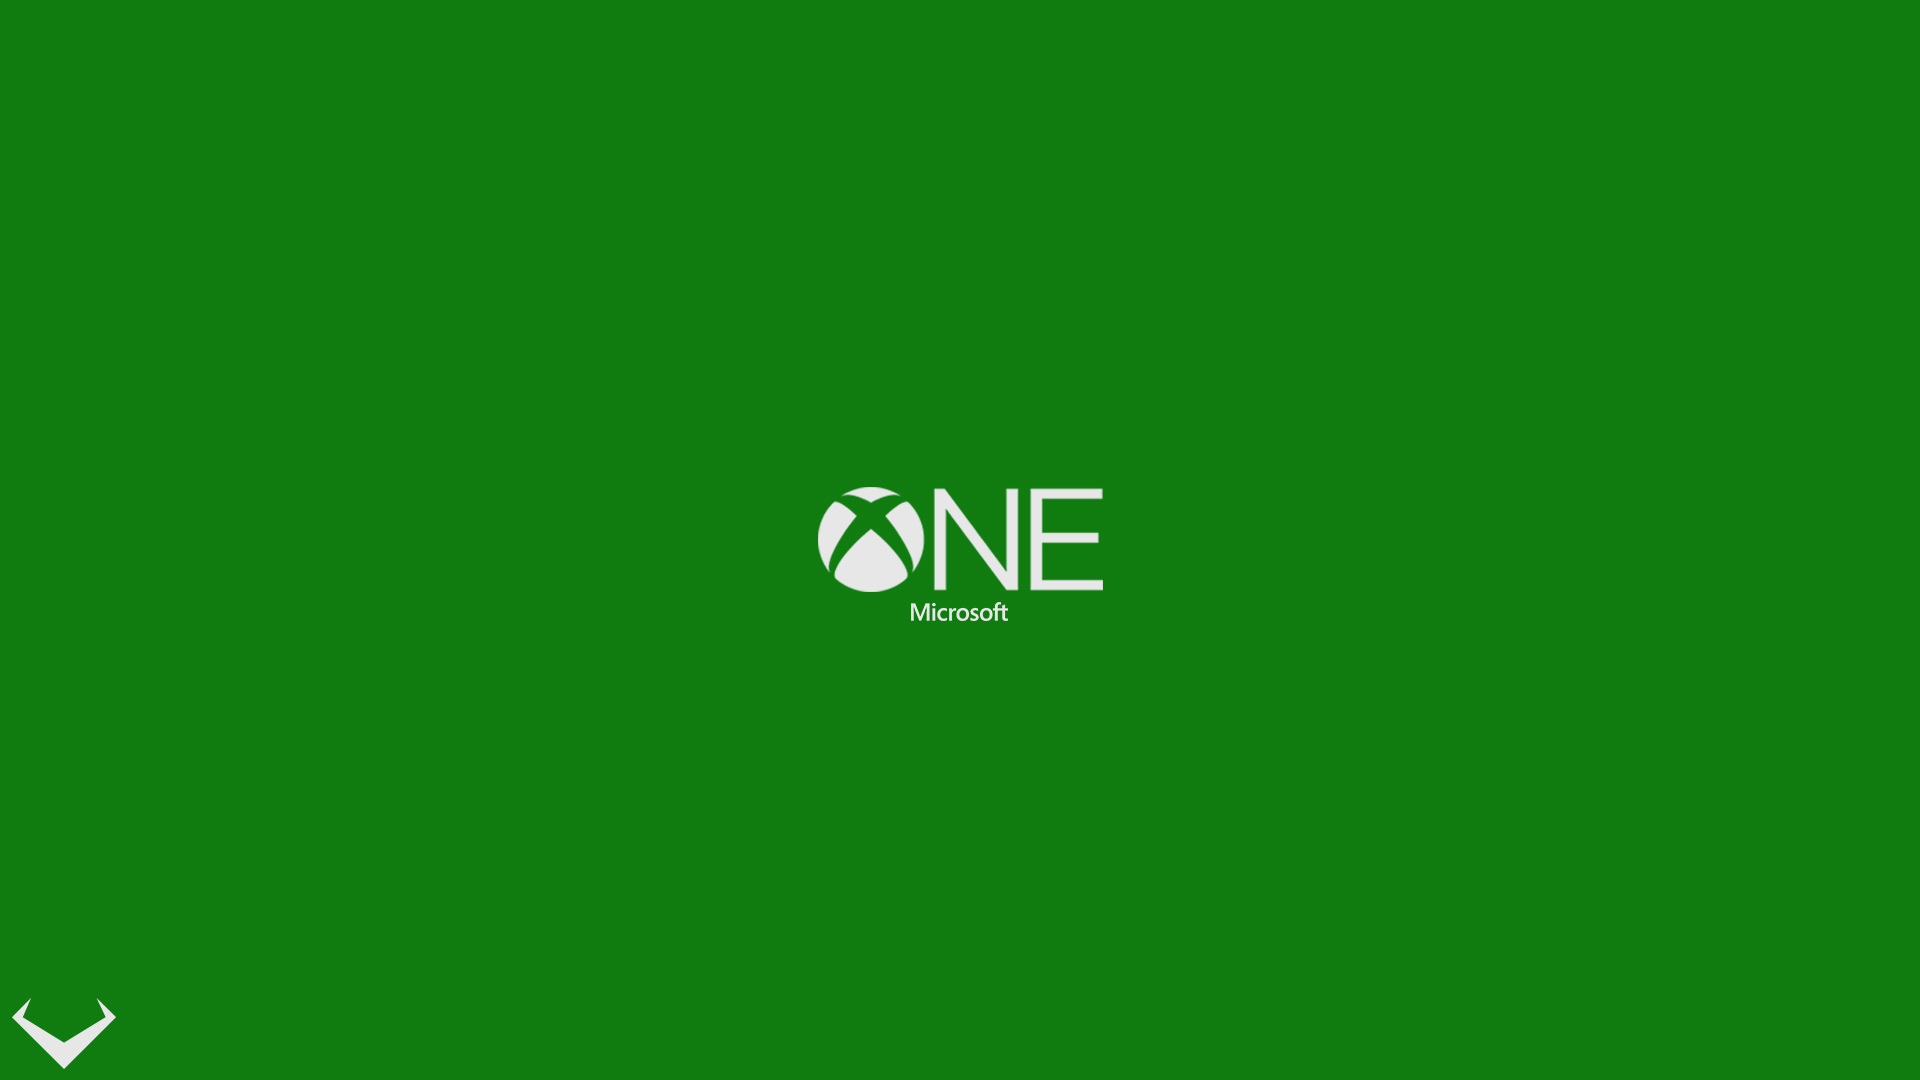 Xbox One Wallpapers Hd: HD Xbox One Wallpaper